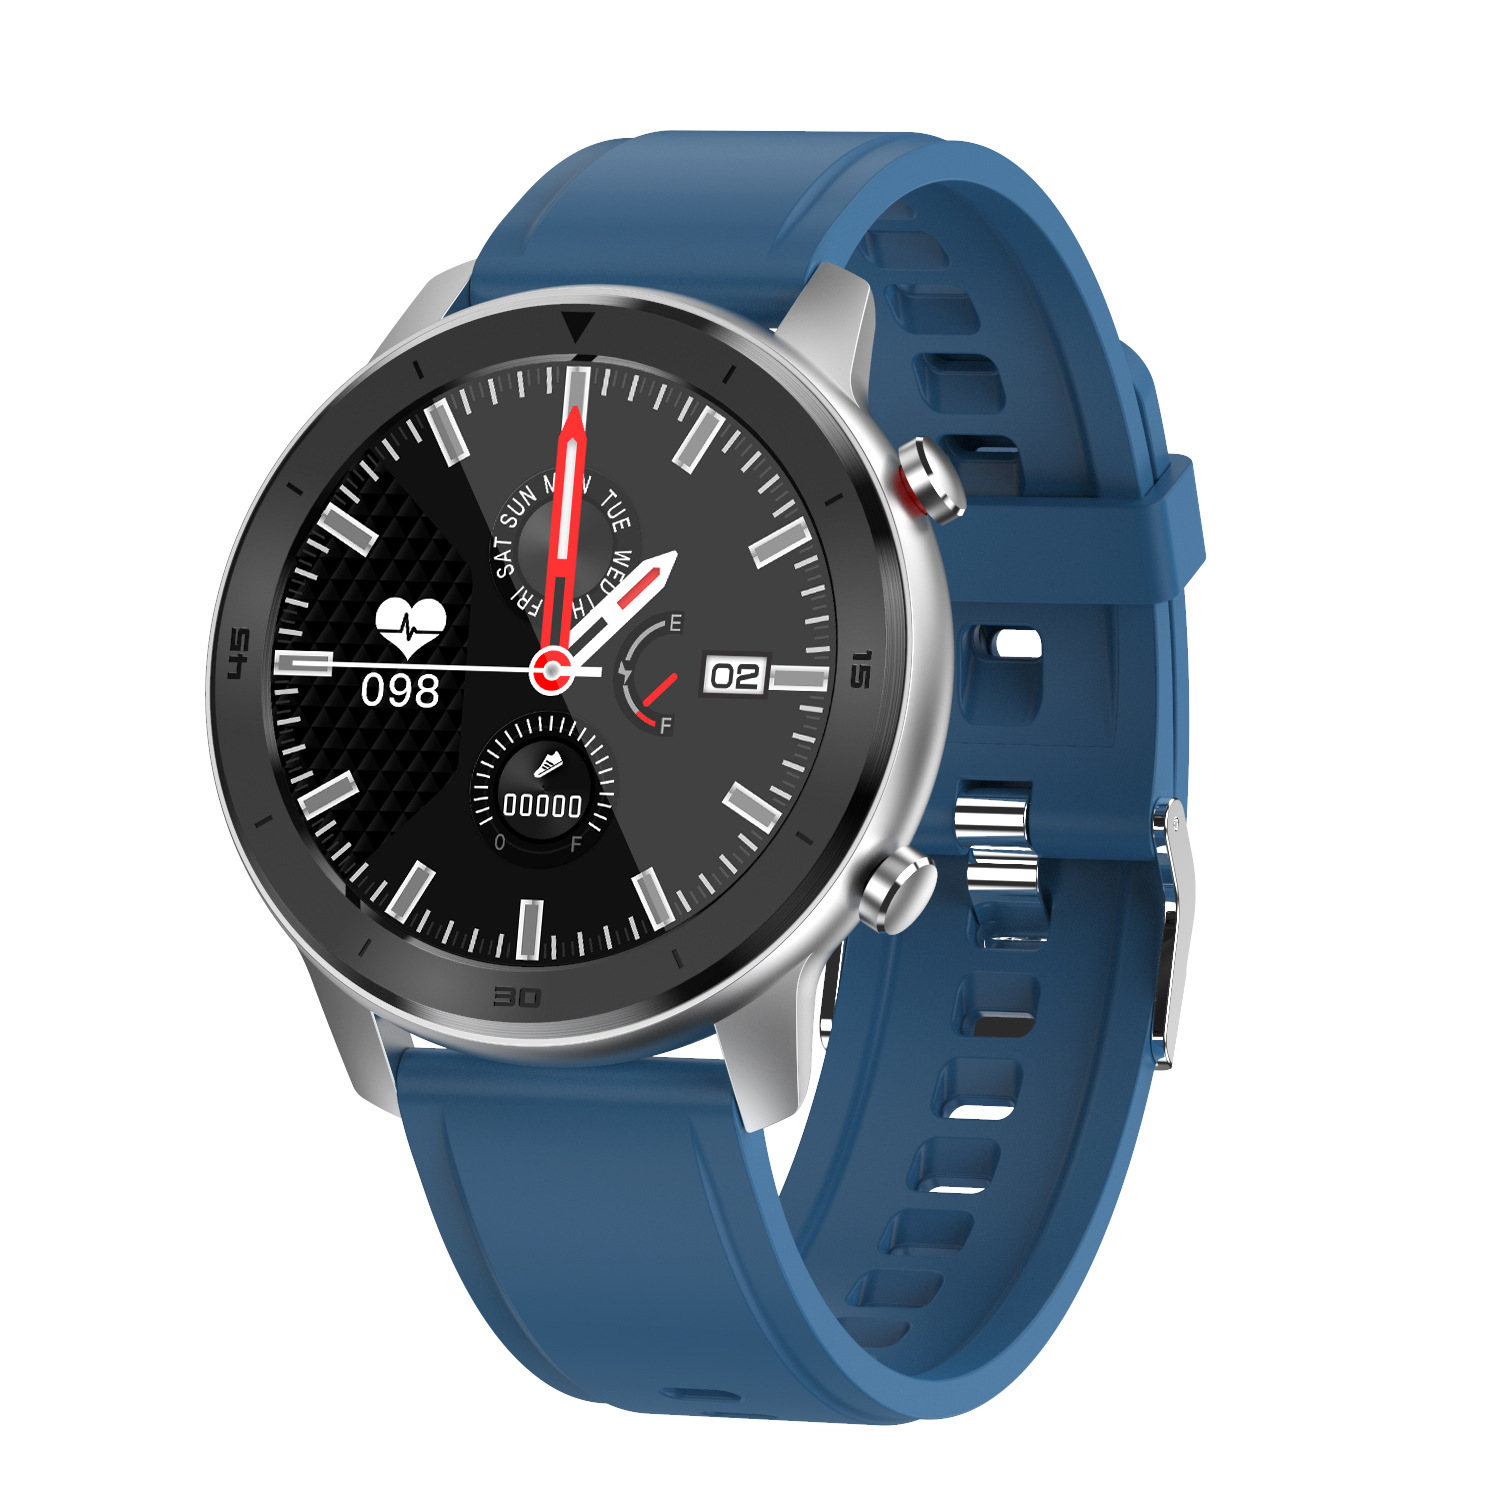 DT78 Smart Watch Sports Smartwatch Fitness Bracelet B1.3inch Full Touch Screen 230mAh Battery IP68 Waterproof Health Monitor Blue silicone band